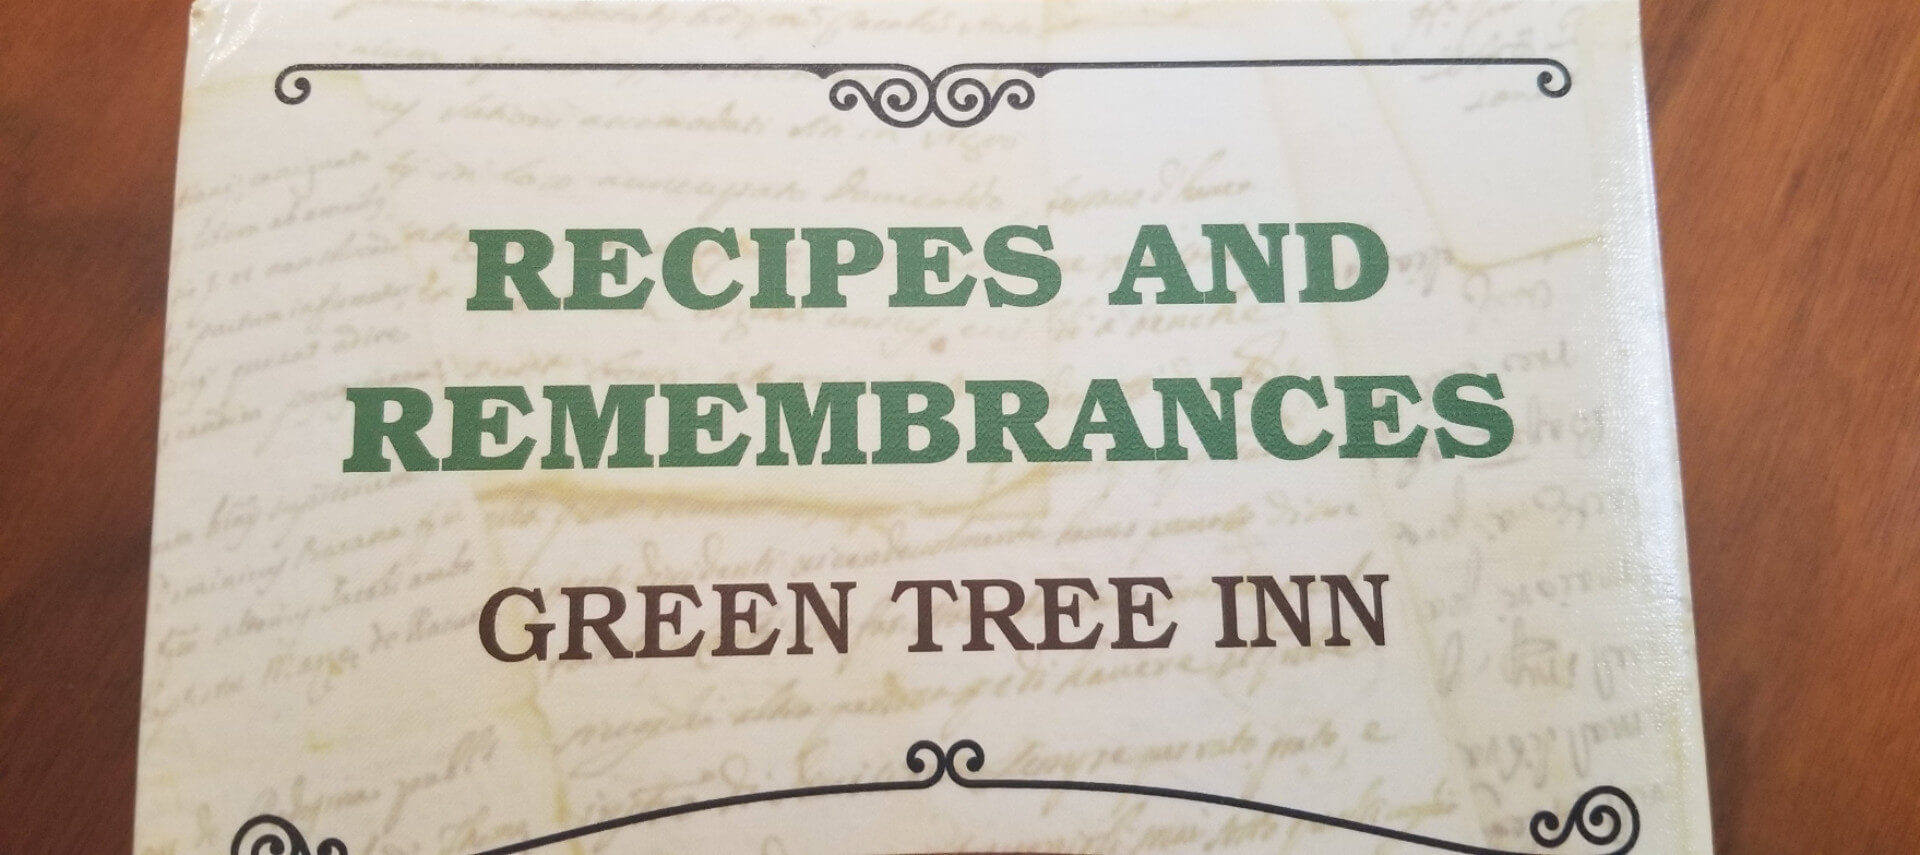 Cookbook Title Text Recipes and Remembrances Green Tree Inn